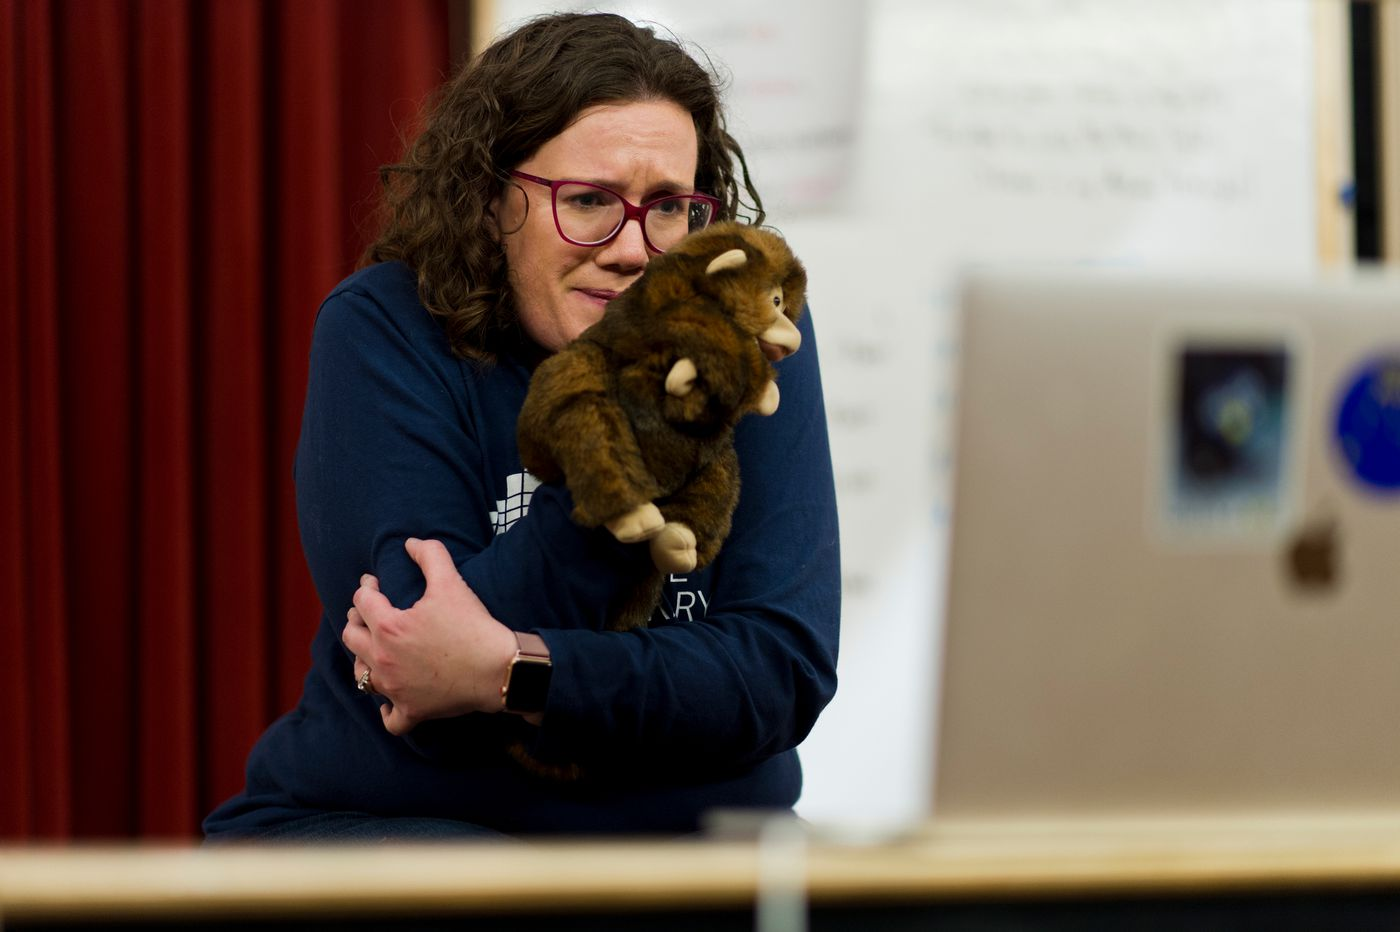 Loussac Library children's librarian Elizabeth Nicolai streams a bedtime story session with help from a puppet on March 24, 2020. (Marc Lester / ADN)